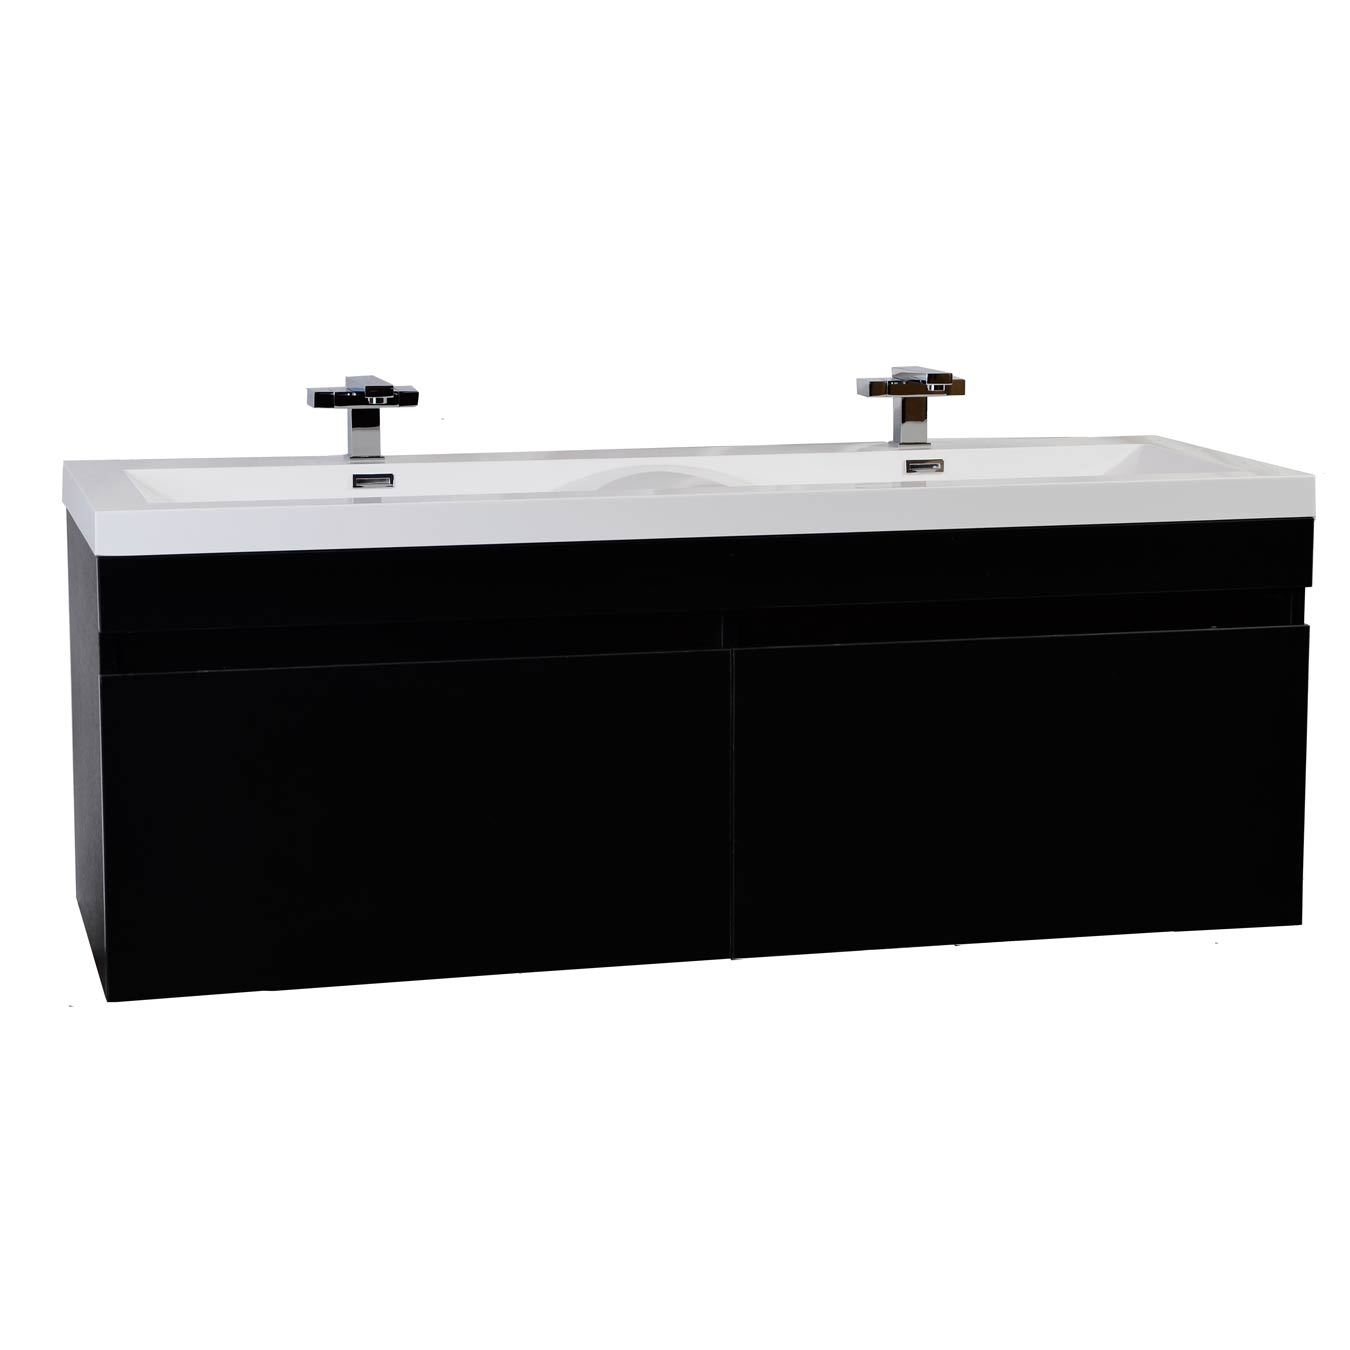 57 Modern Double Sink Vanity Set With Wavy Sinks Black TN A1440 BK